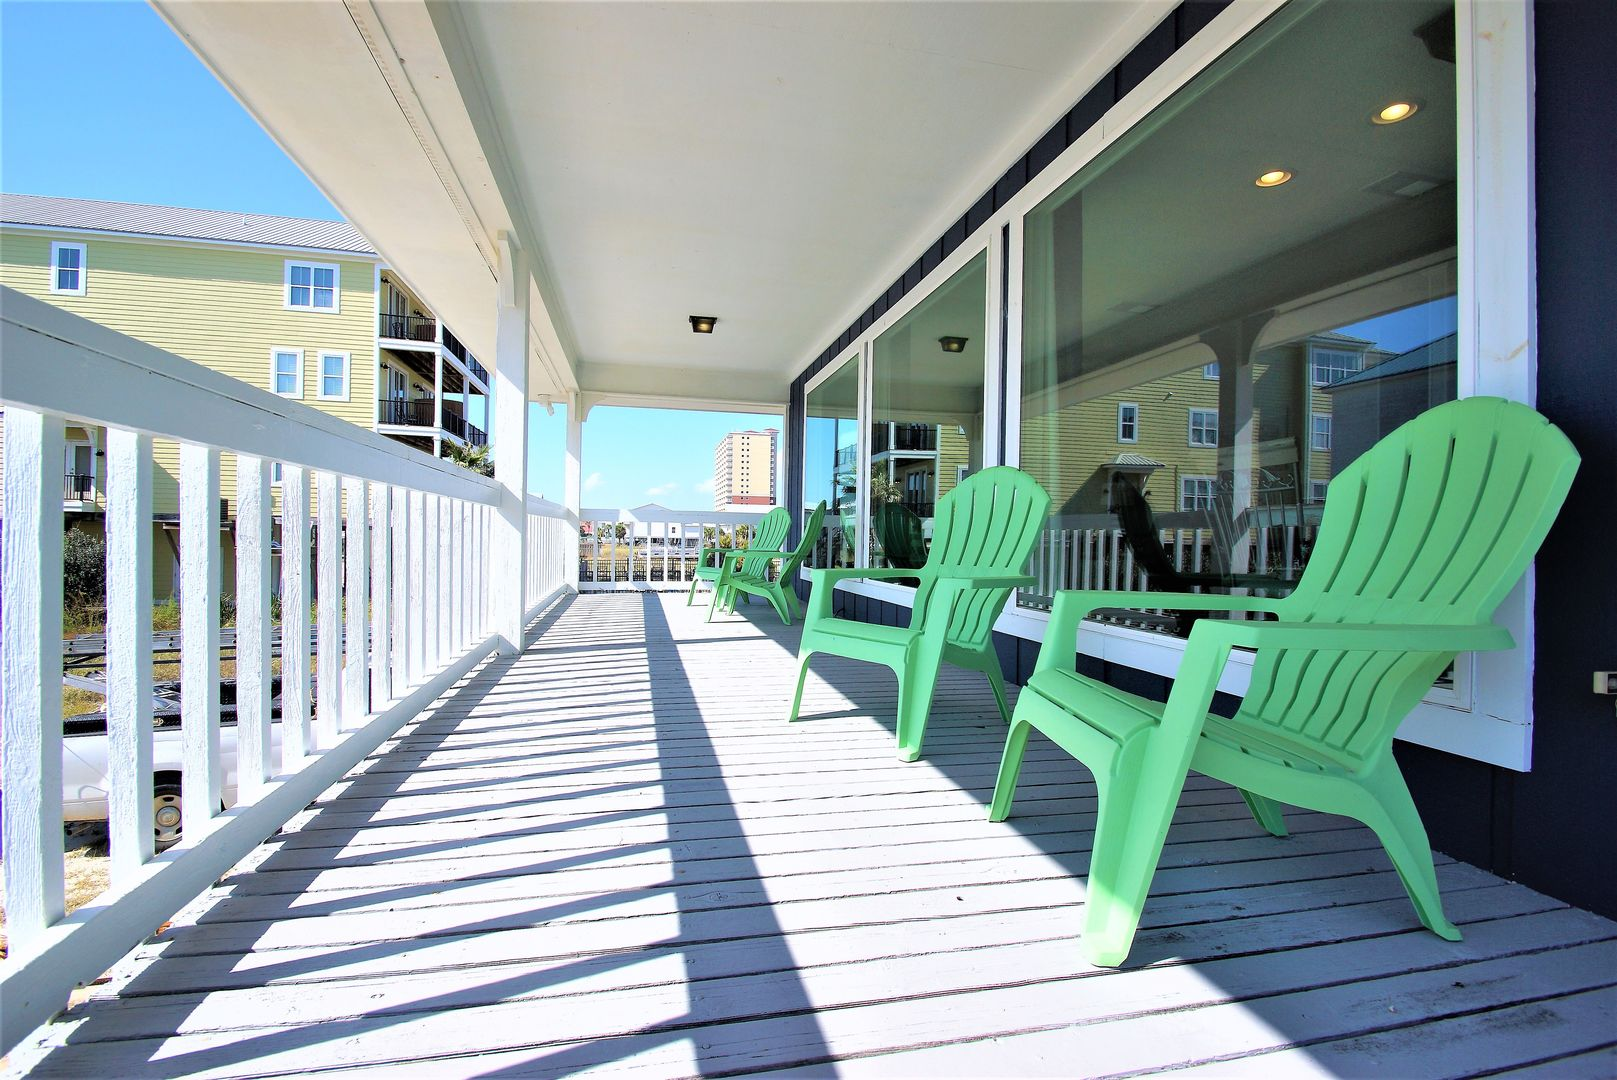 The Porch with Outdoor Chairs and Windows.